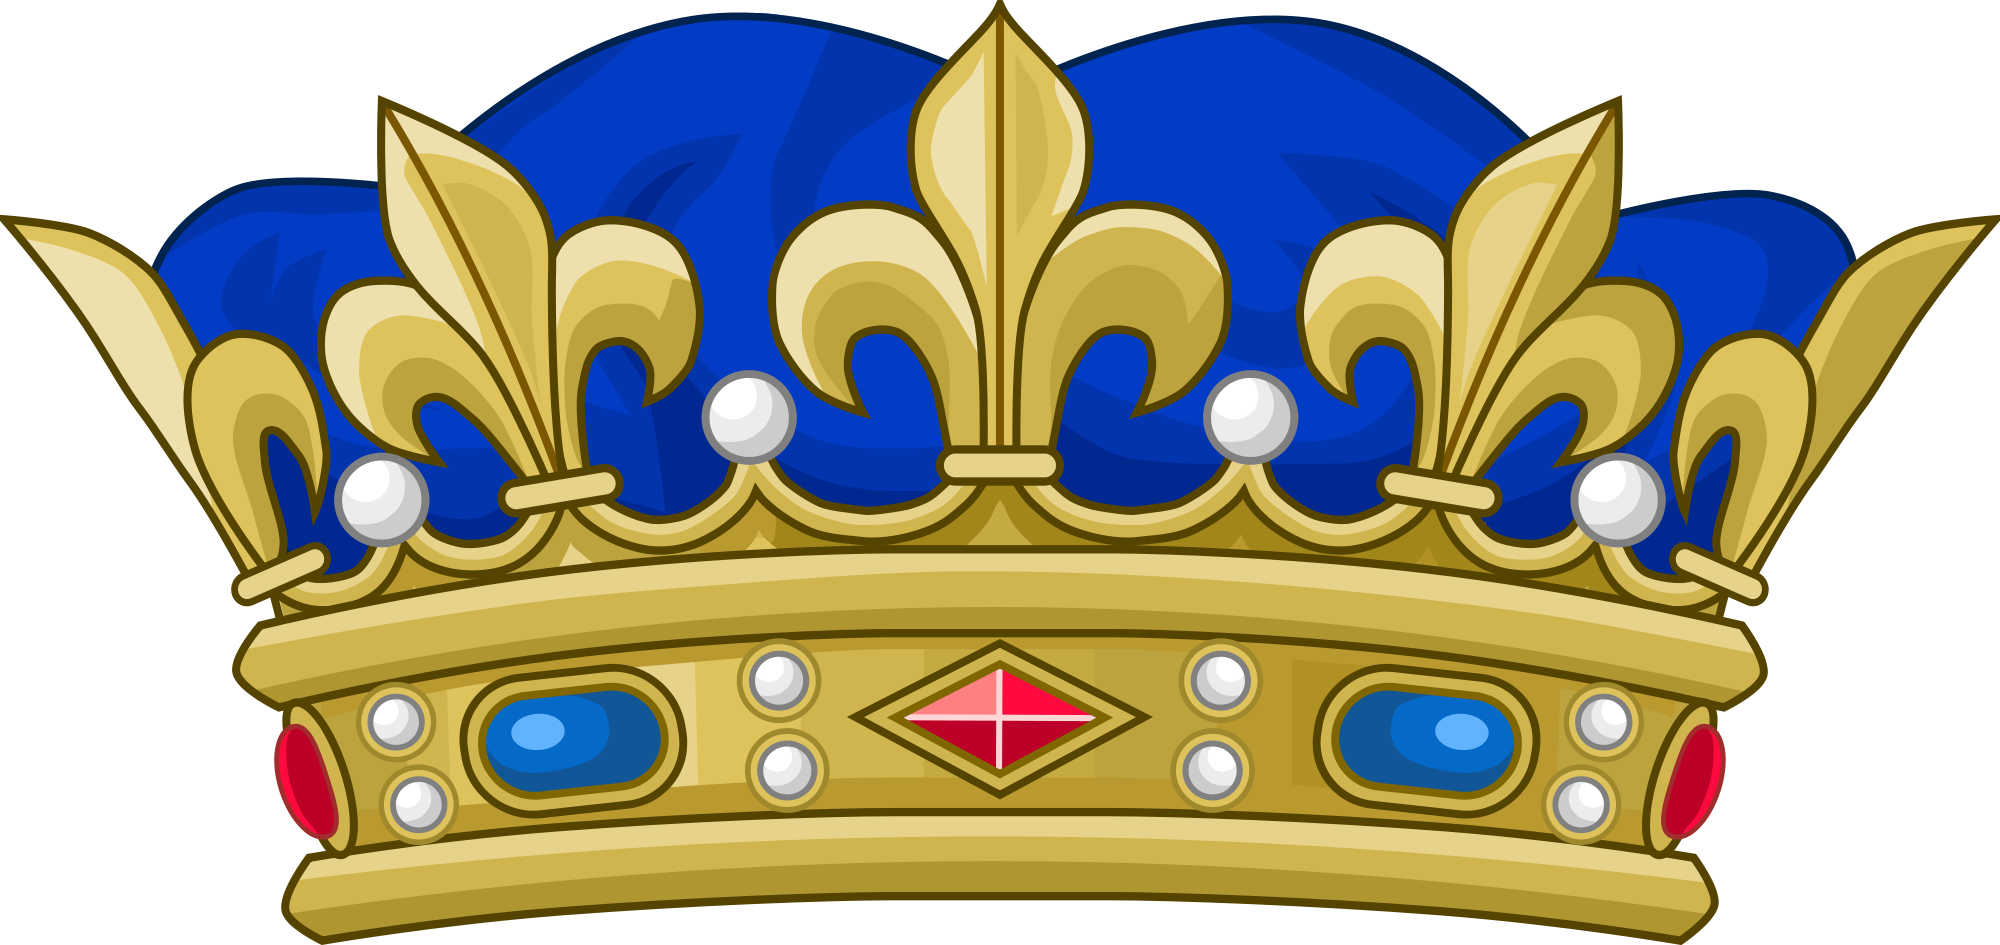 Golden and blue crown clipart svg free stock File:Crown of a Royal Prince of the Blood of France.svg - Wikimedia ... svg free stock